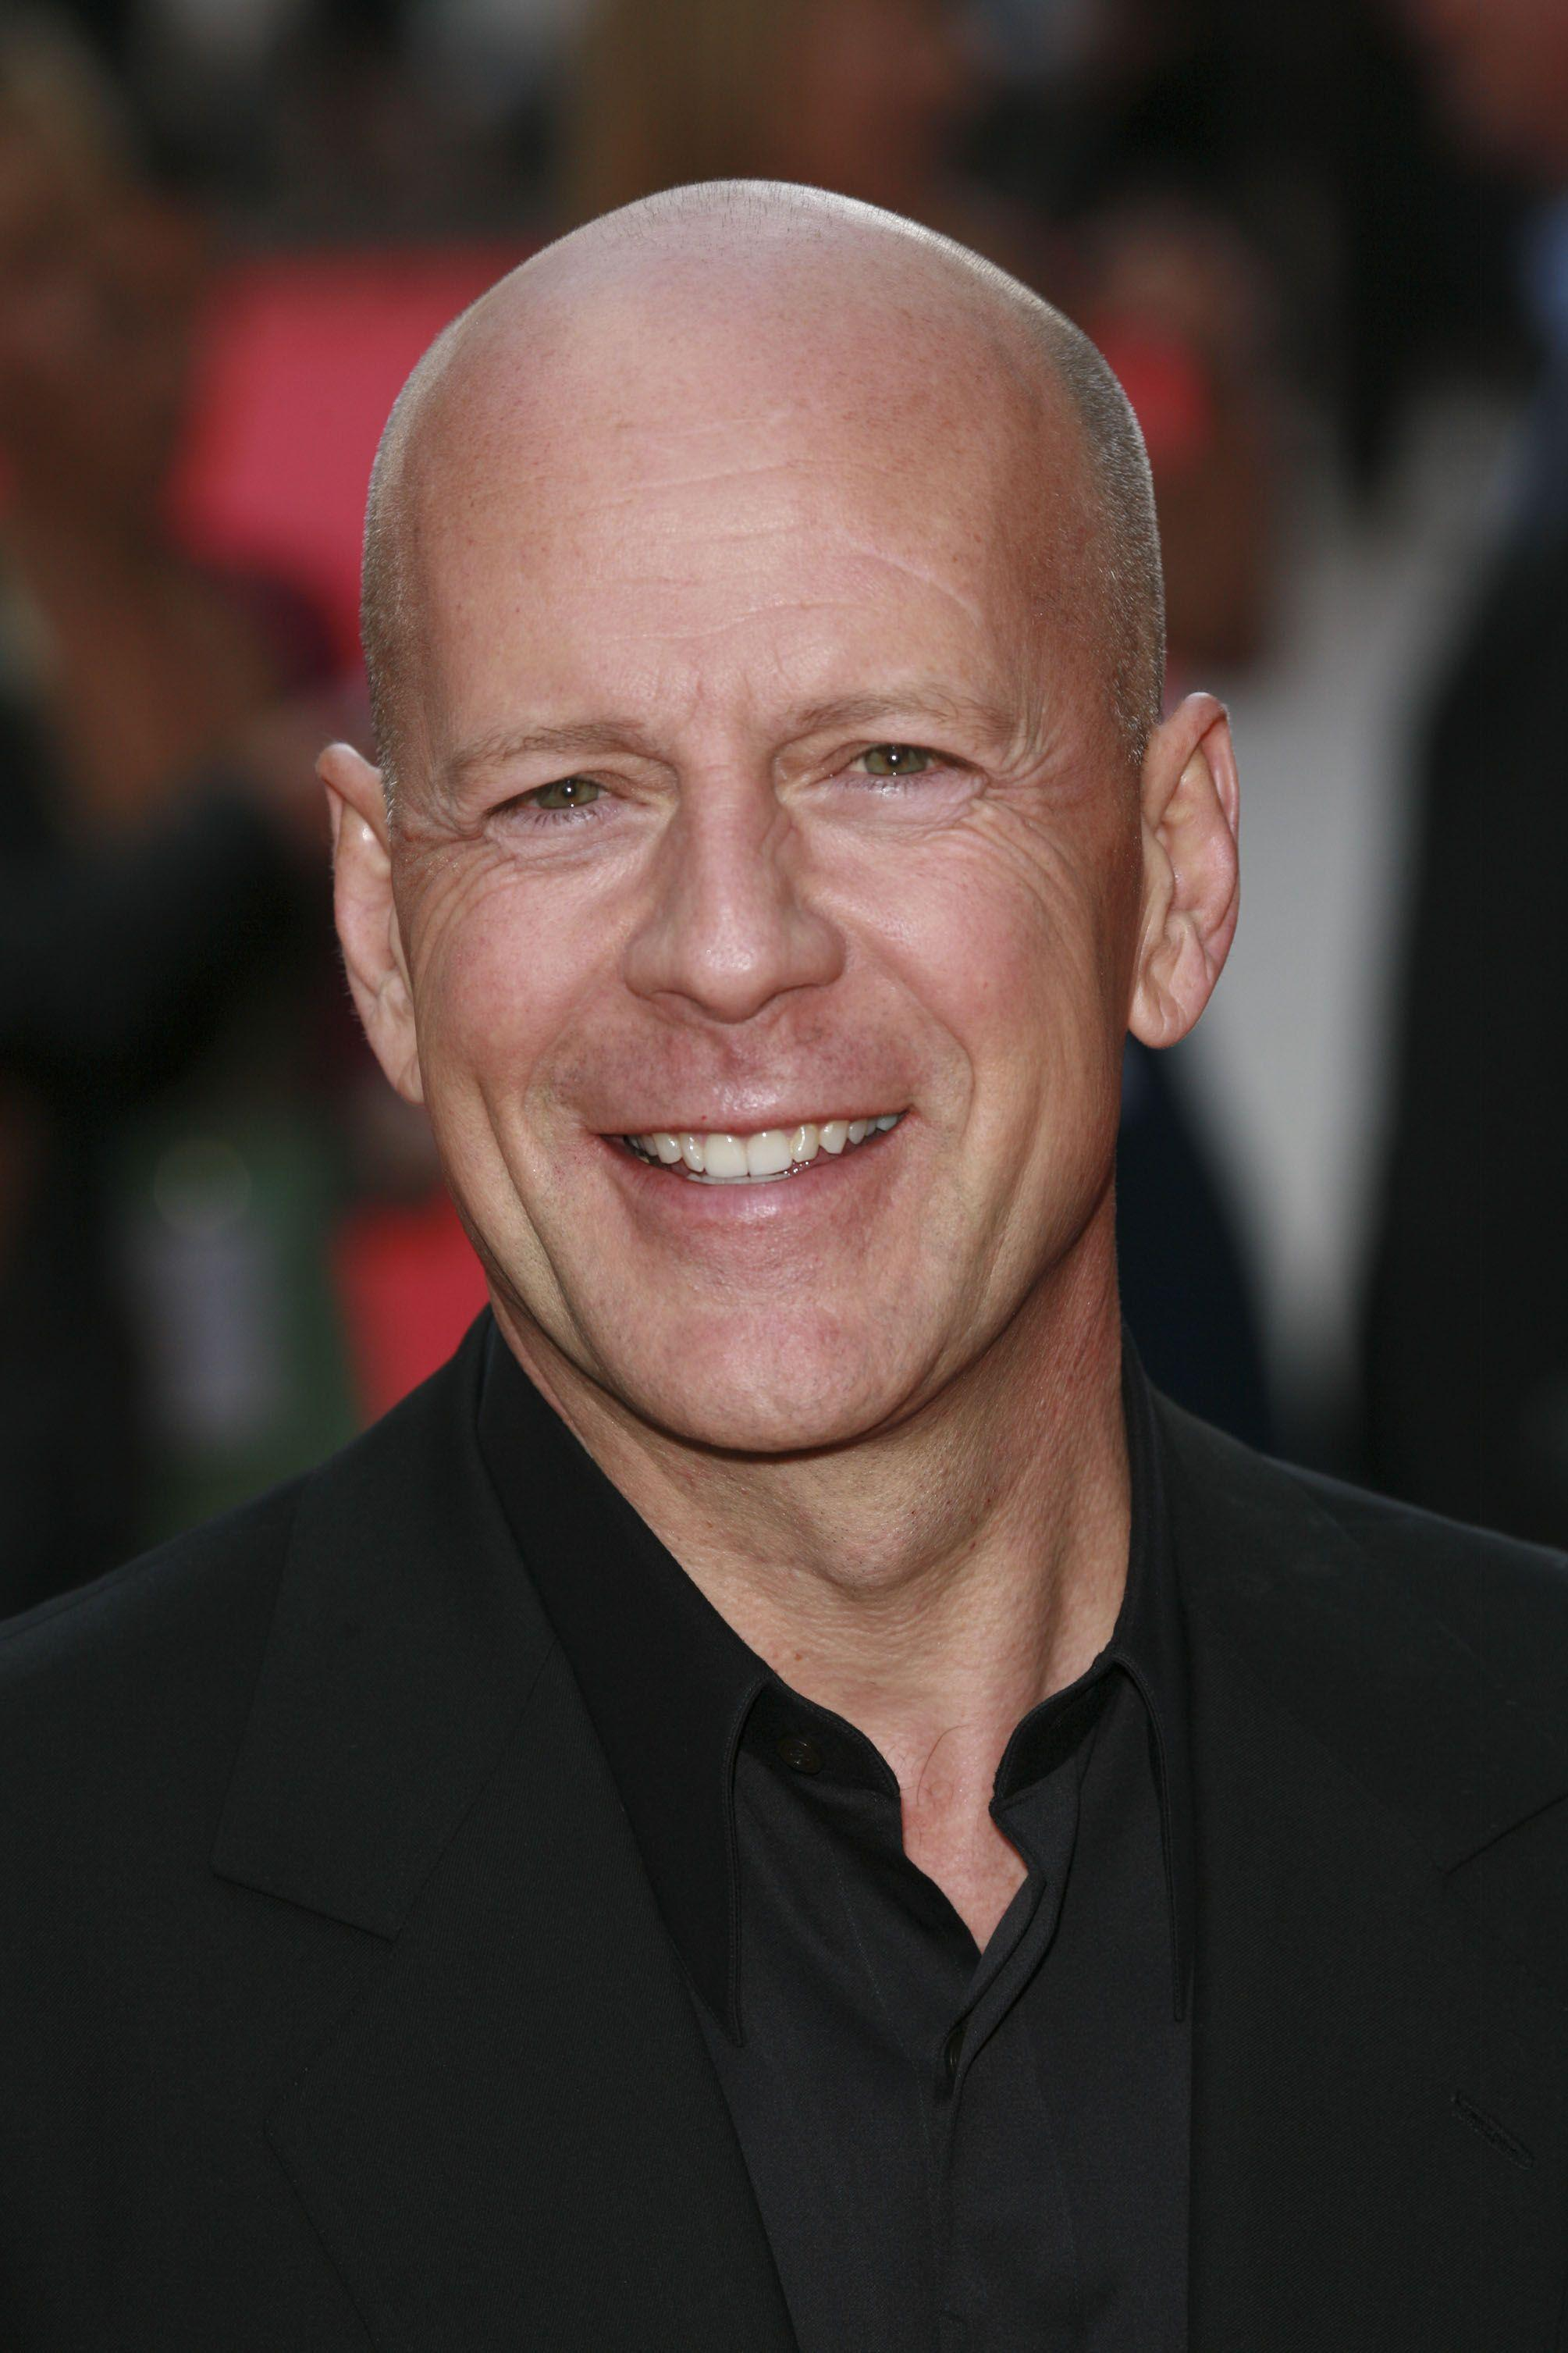 HD Bruce Willis Wallpapers and Photos | HD Celebrities Wallpapers